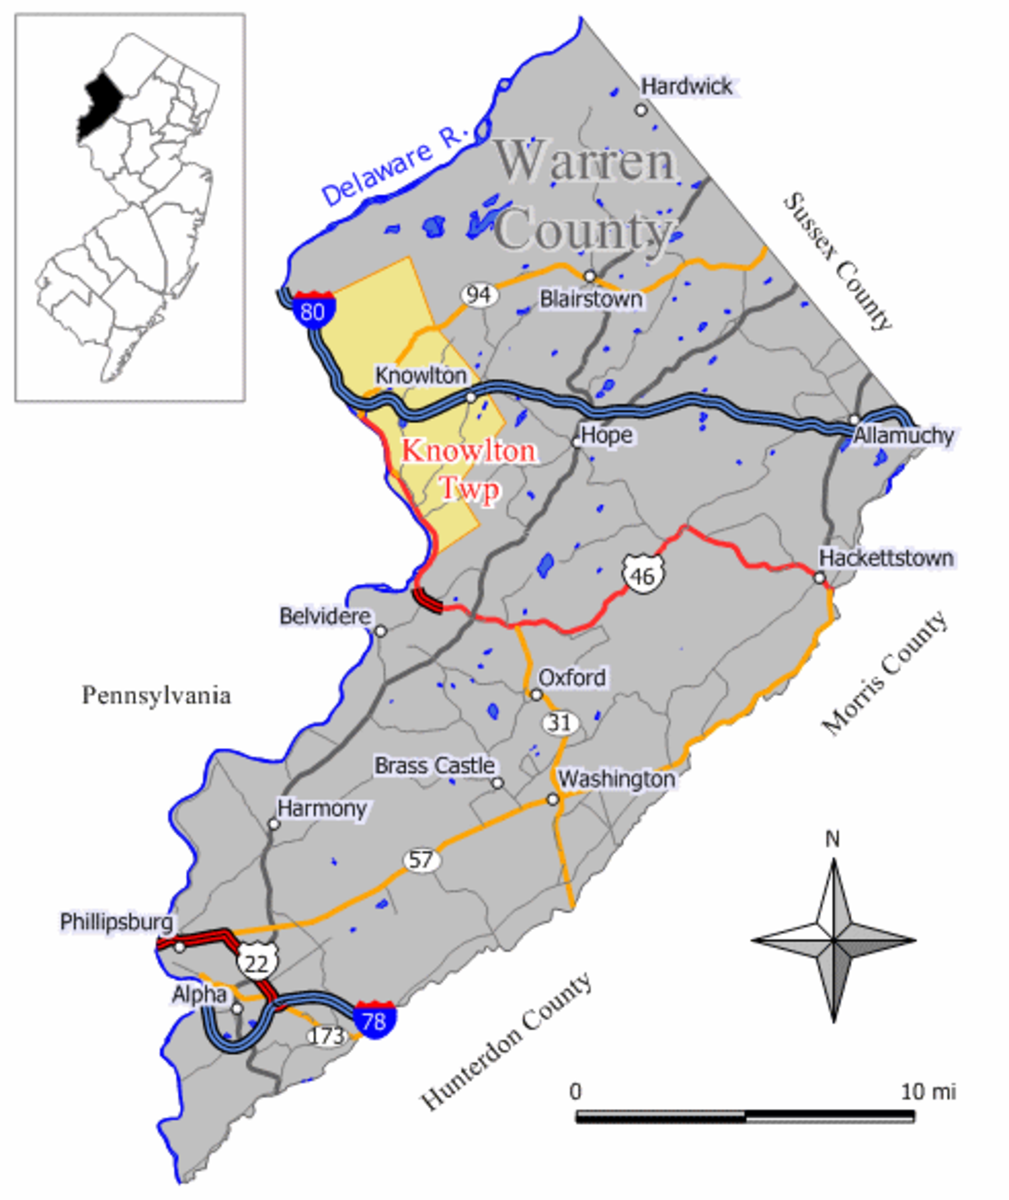 Map of Knowlton Township in Warren County, New Jersey.